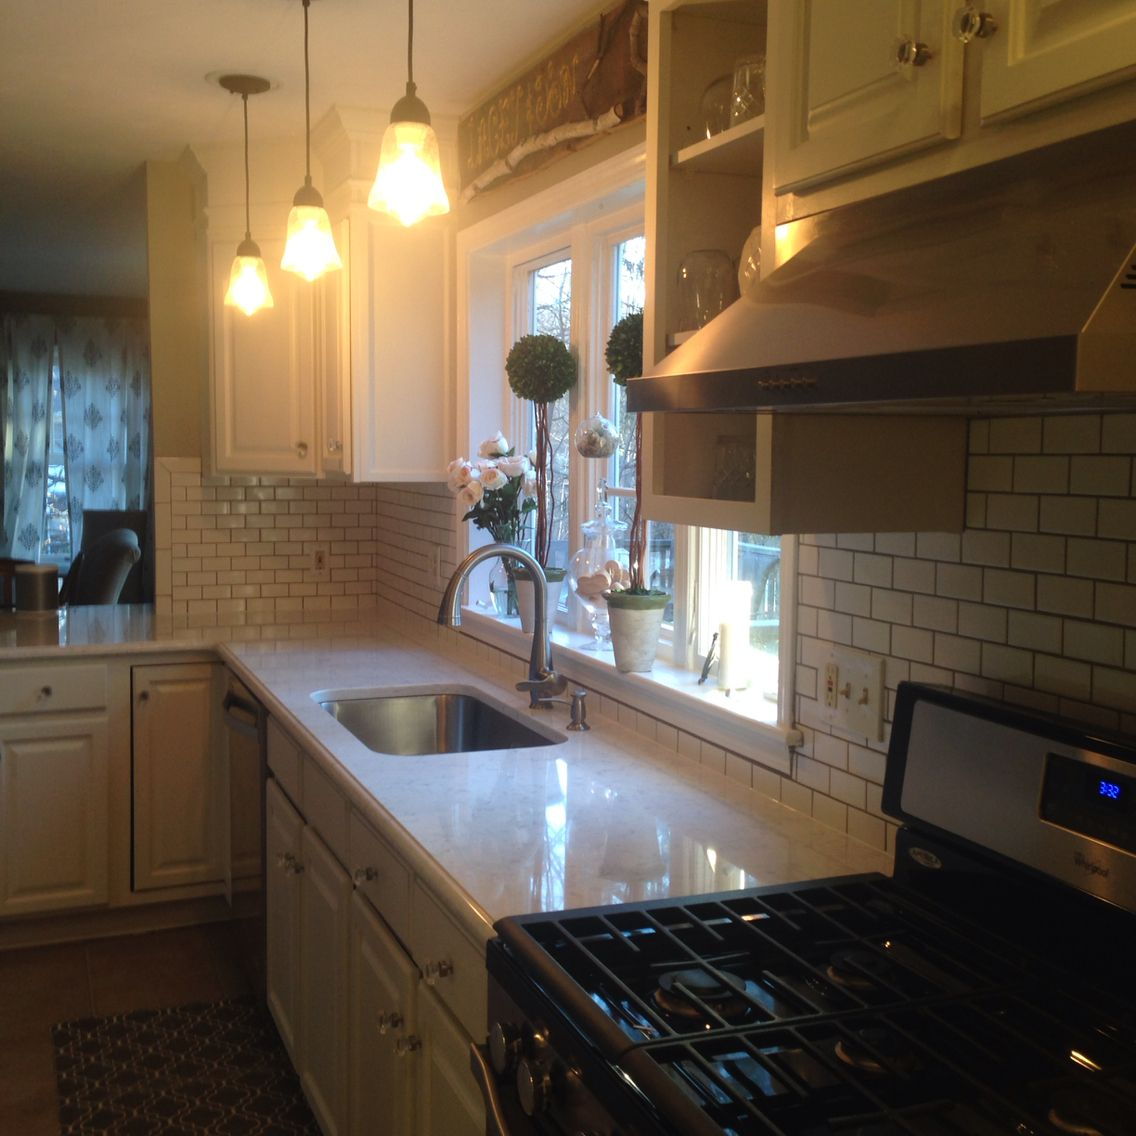 My White Kitchen Dreams Have Come True! Viatera Minuet Quartz Countertops  And 2x4 White Subway